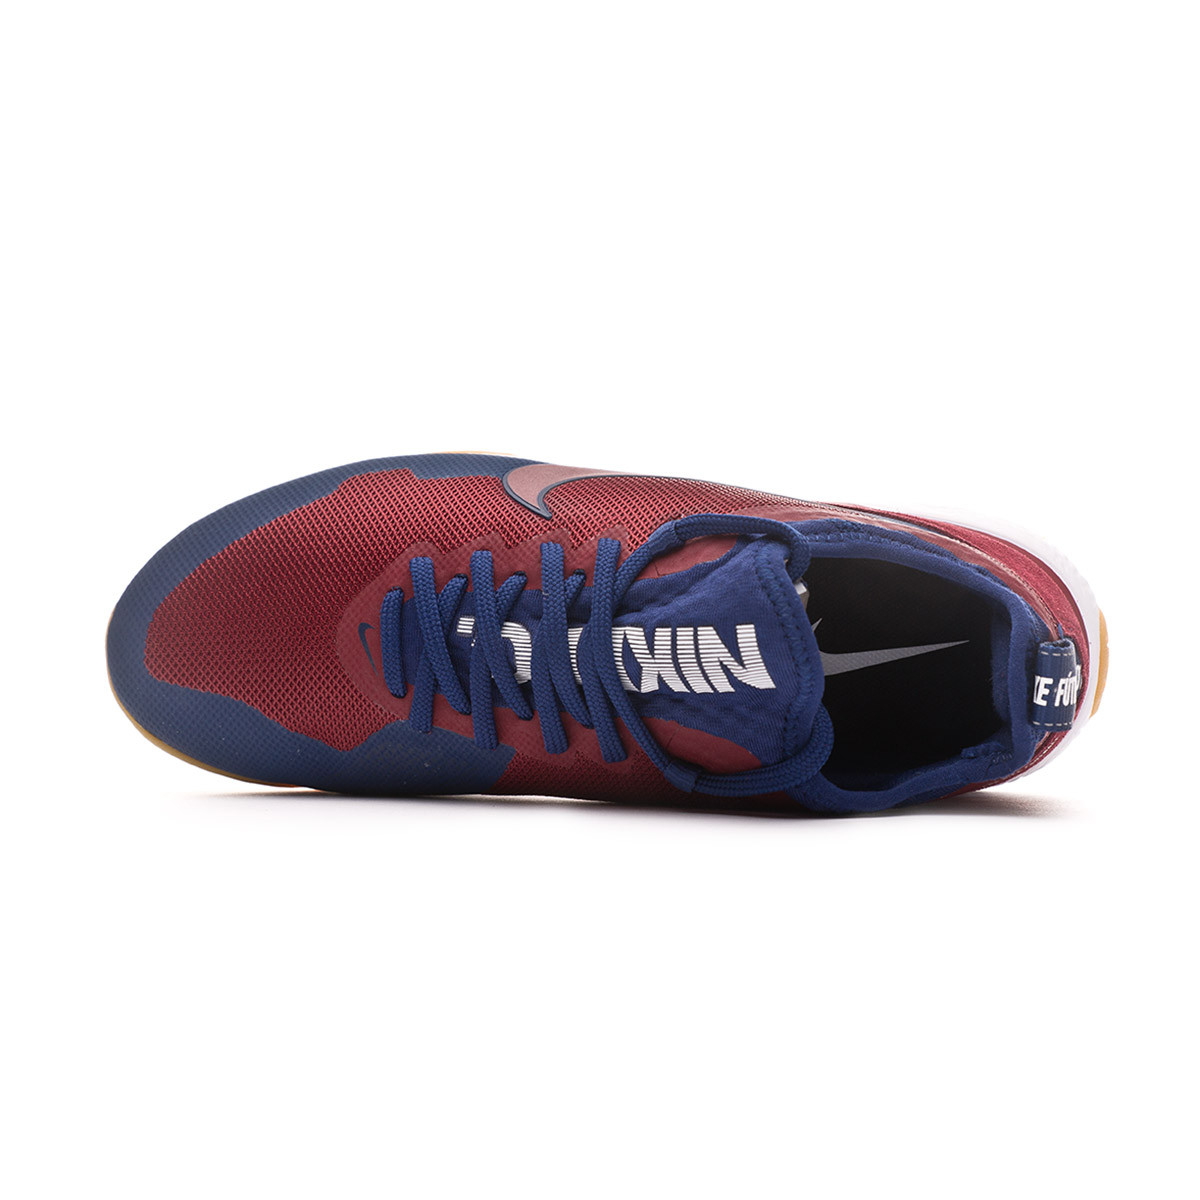 info for b7da5 d050a Trainers Nike Nike F.C. Team red-White-Blue void-Gum light brown - Football  store Fútbol Emotion